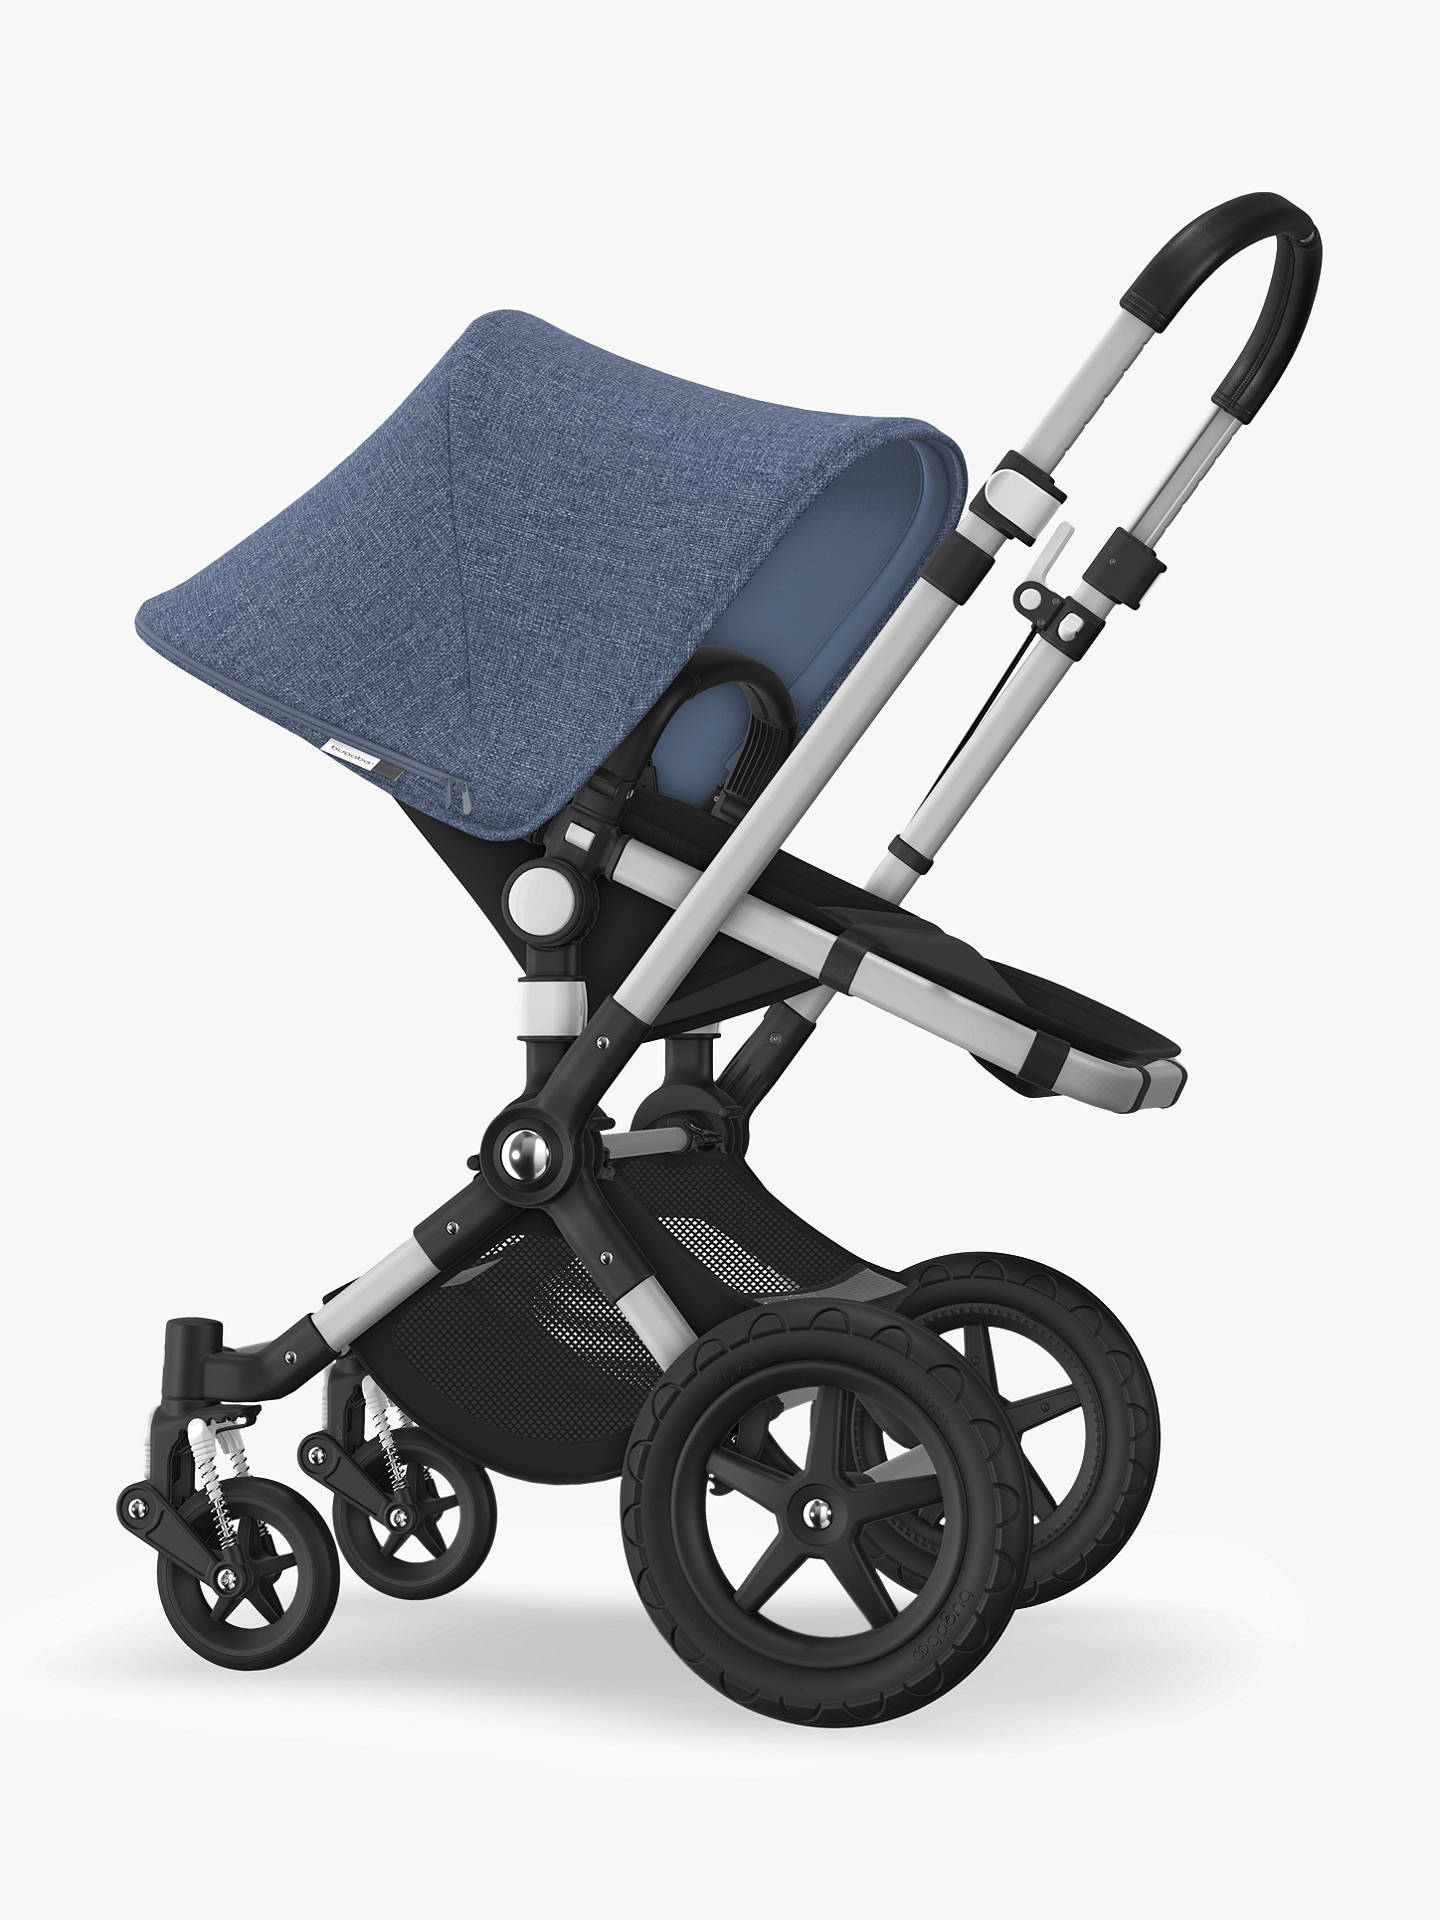 BuyBugaboo Cameleon3 Plus Complete Pushchair and Carrycot, Aluminium/Black with Blue Melange Sun Canopy Online at johnlewis.com